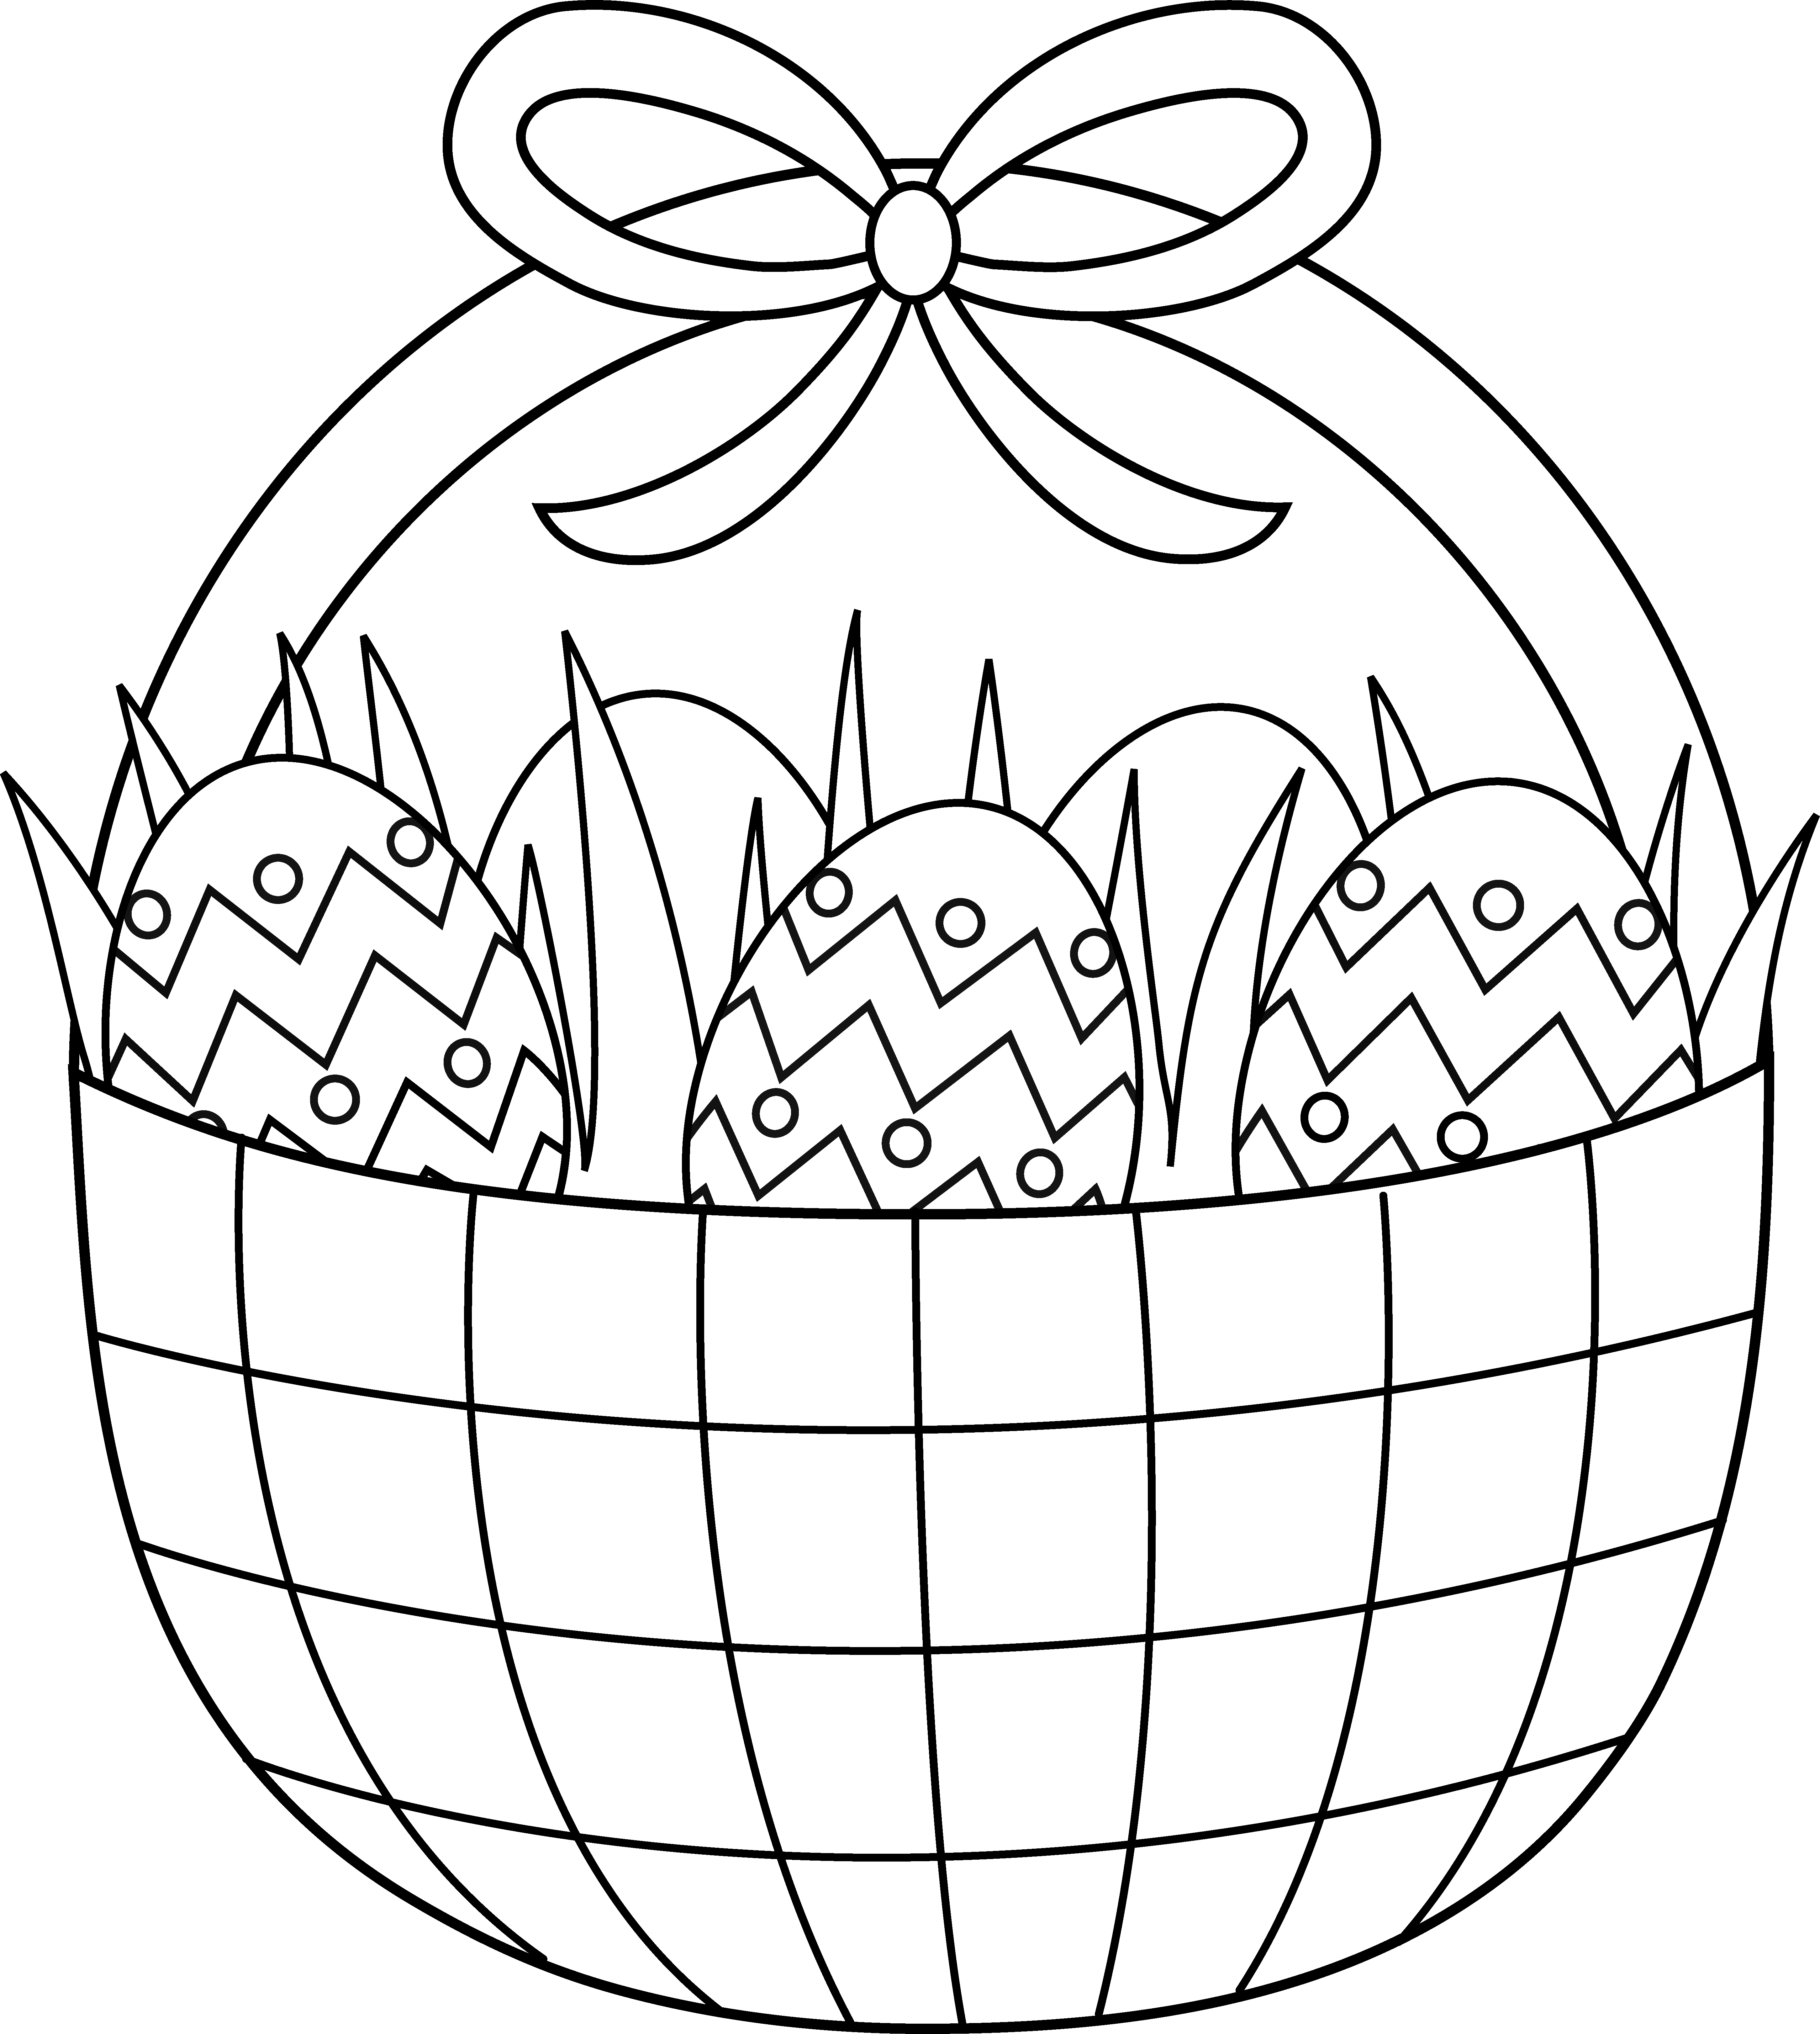 Easter Basket Coloring Page - Free Clip Art graphic royalty free stock